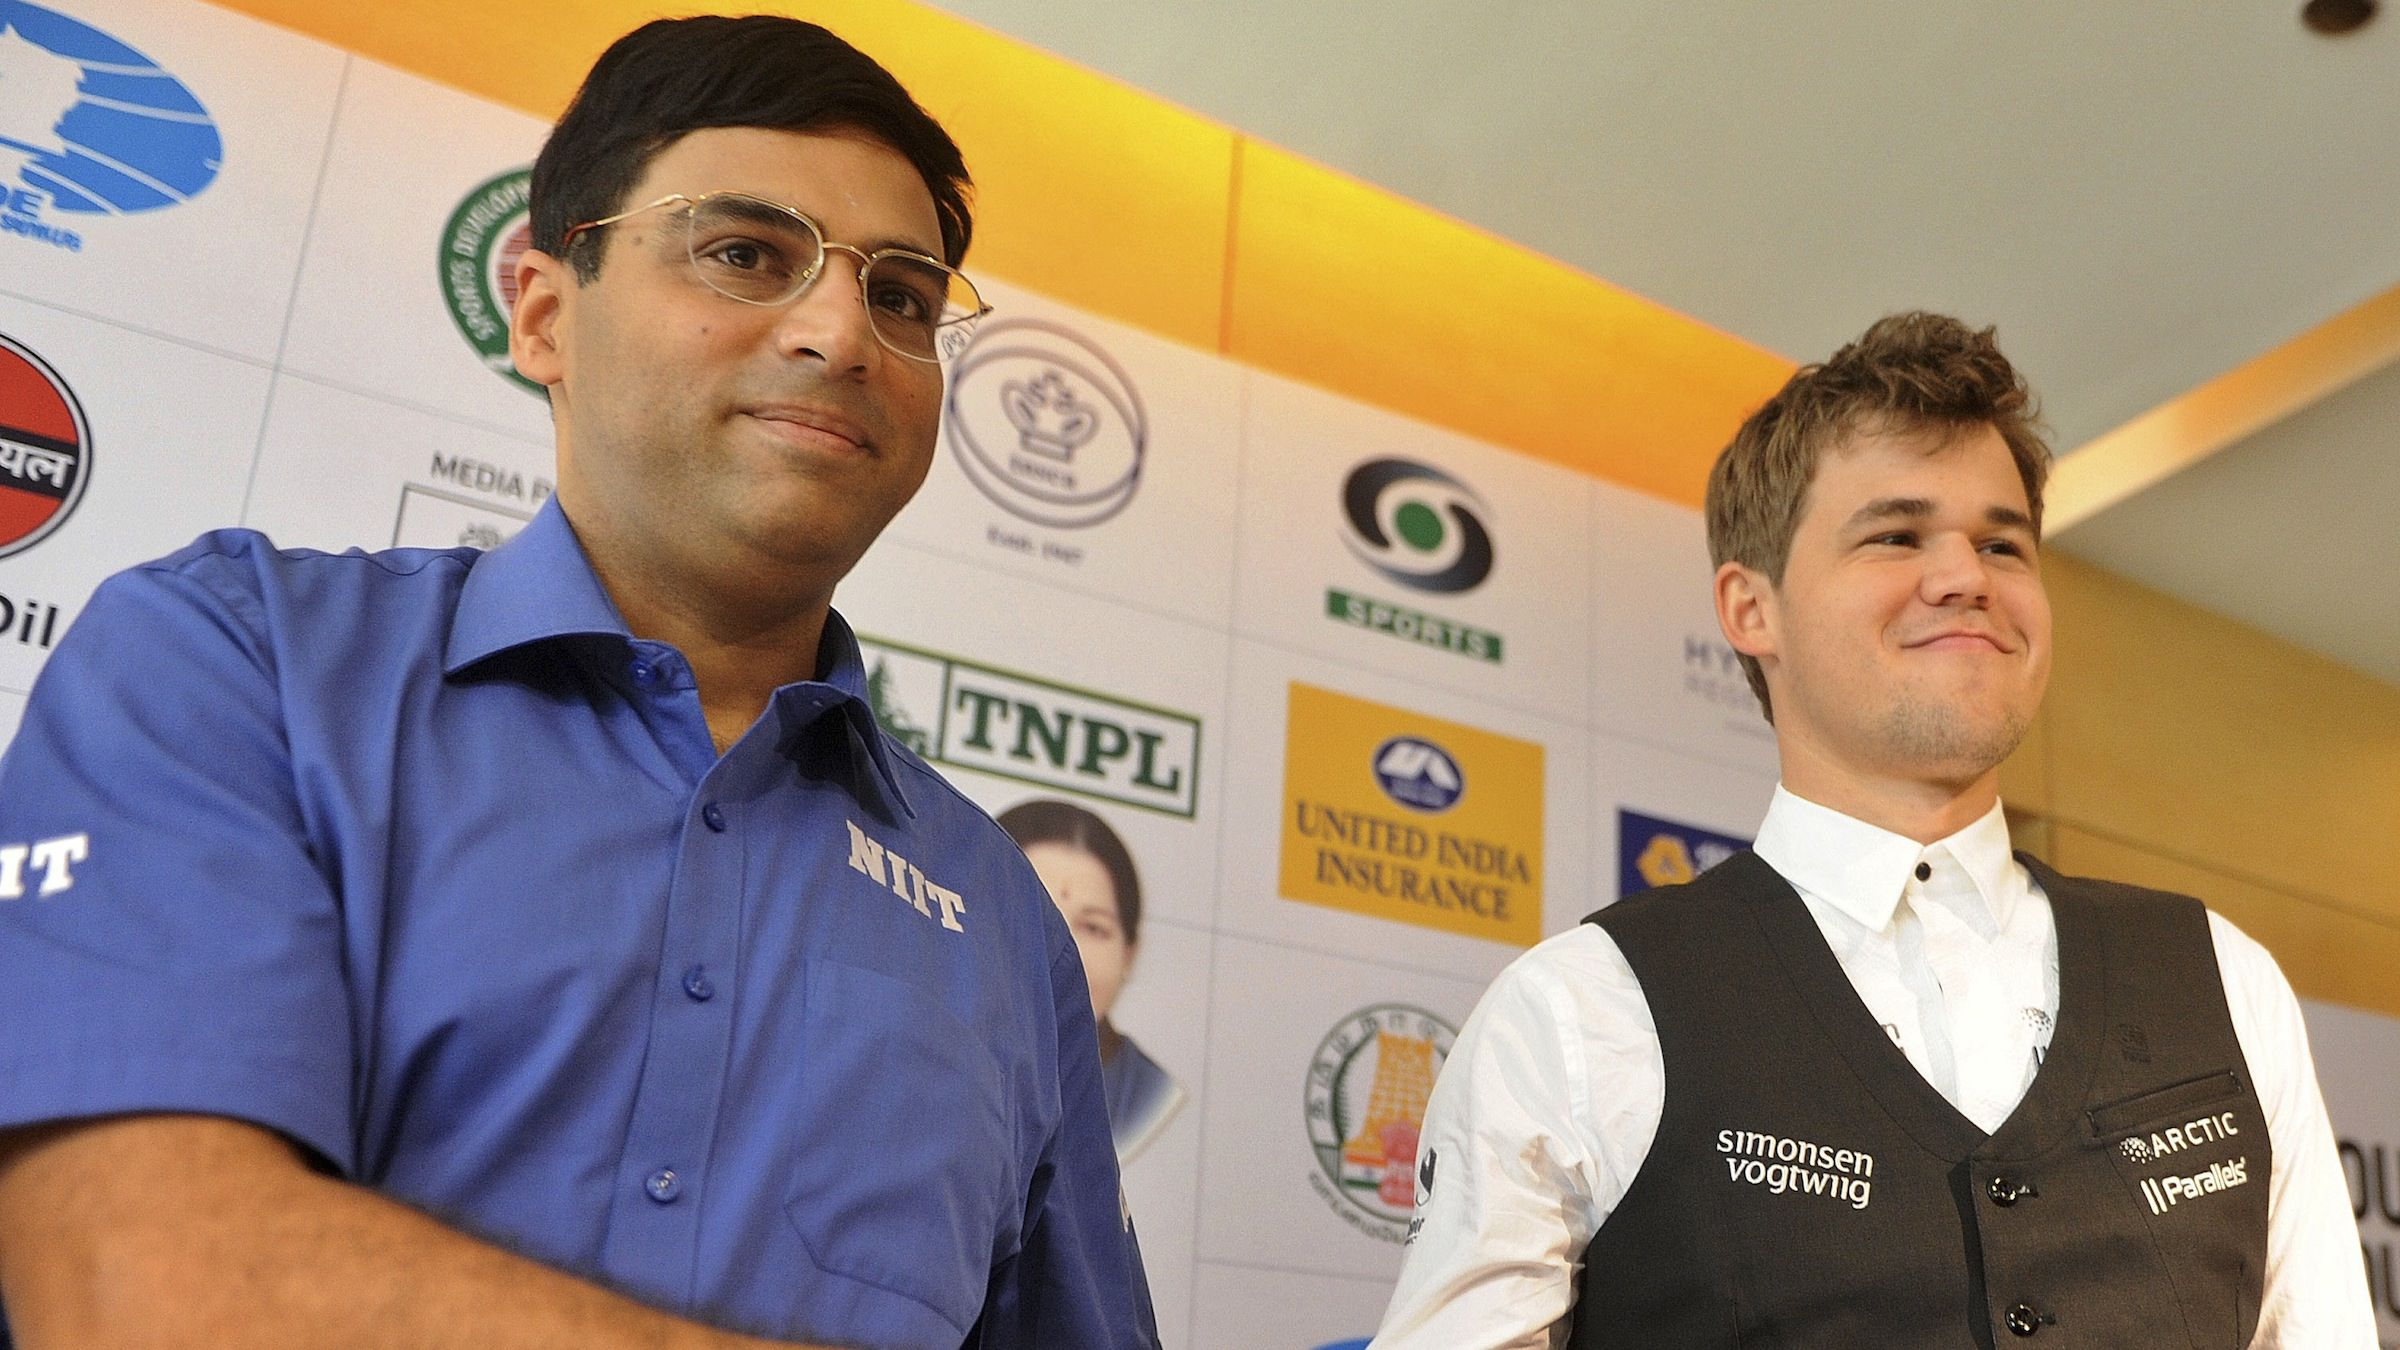 Reigning world chess champion India's Viswanathan Anand, left and world's top-ranked player Norway's Magnus Carlsen pose for the media at a press conference ahead of the FIDE World Chess Championship in Chennai, India, Thursday, Nov. 7, 2013. 43-year-old Anand and 22-year-old Carlsen will play their first match of the 12-match series from Saturday. (AP Photo/Arun Sankar K )